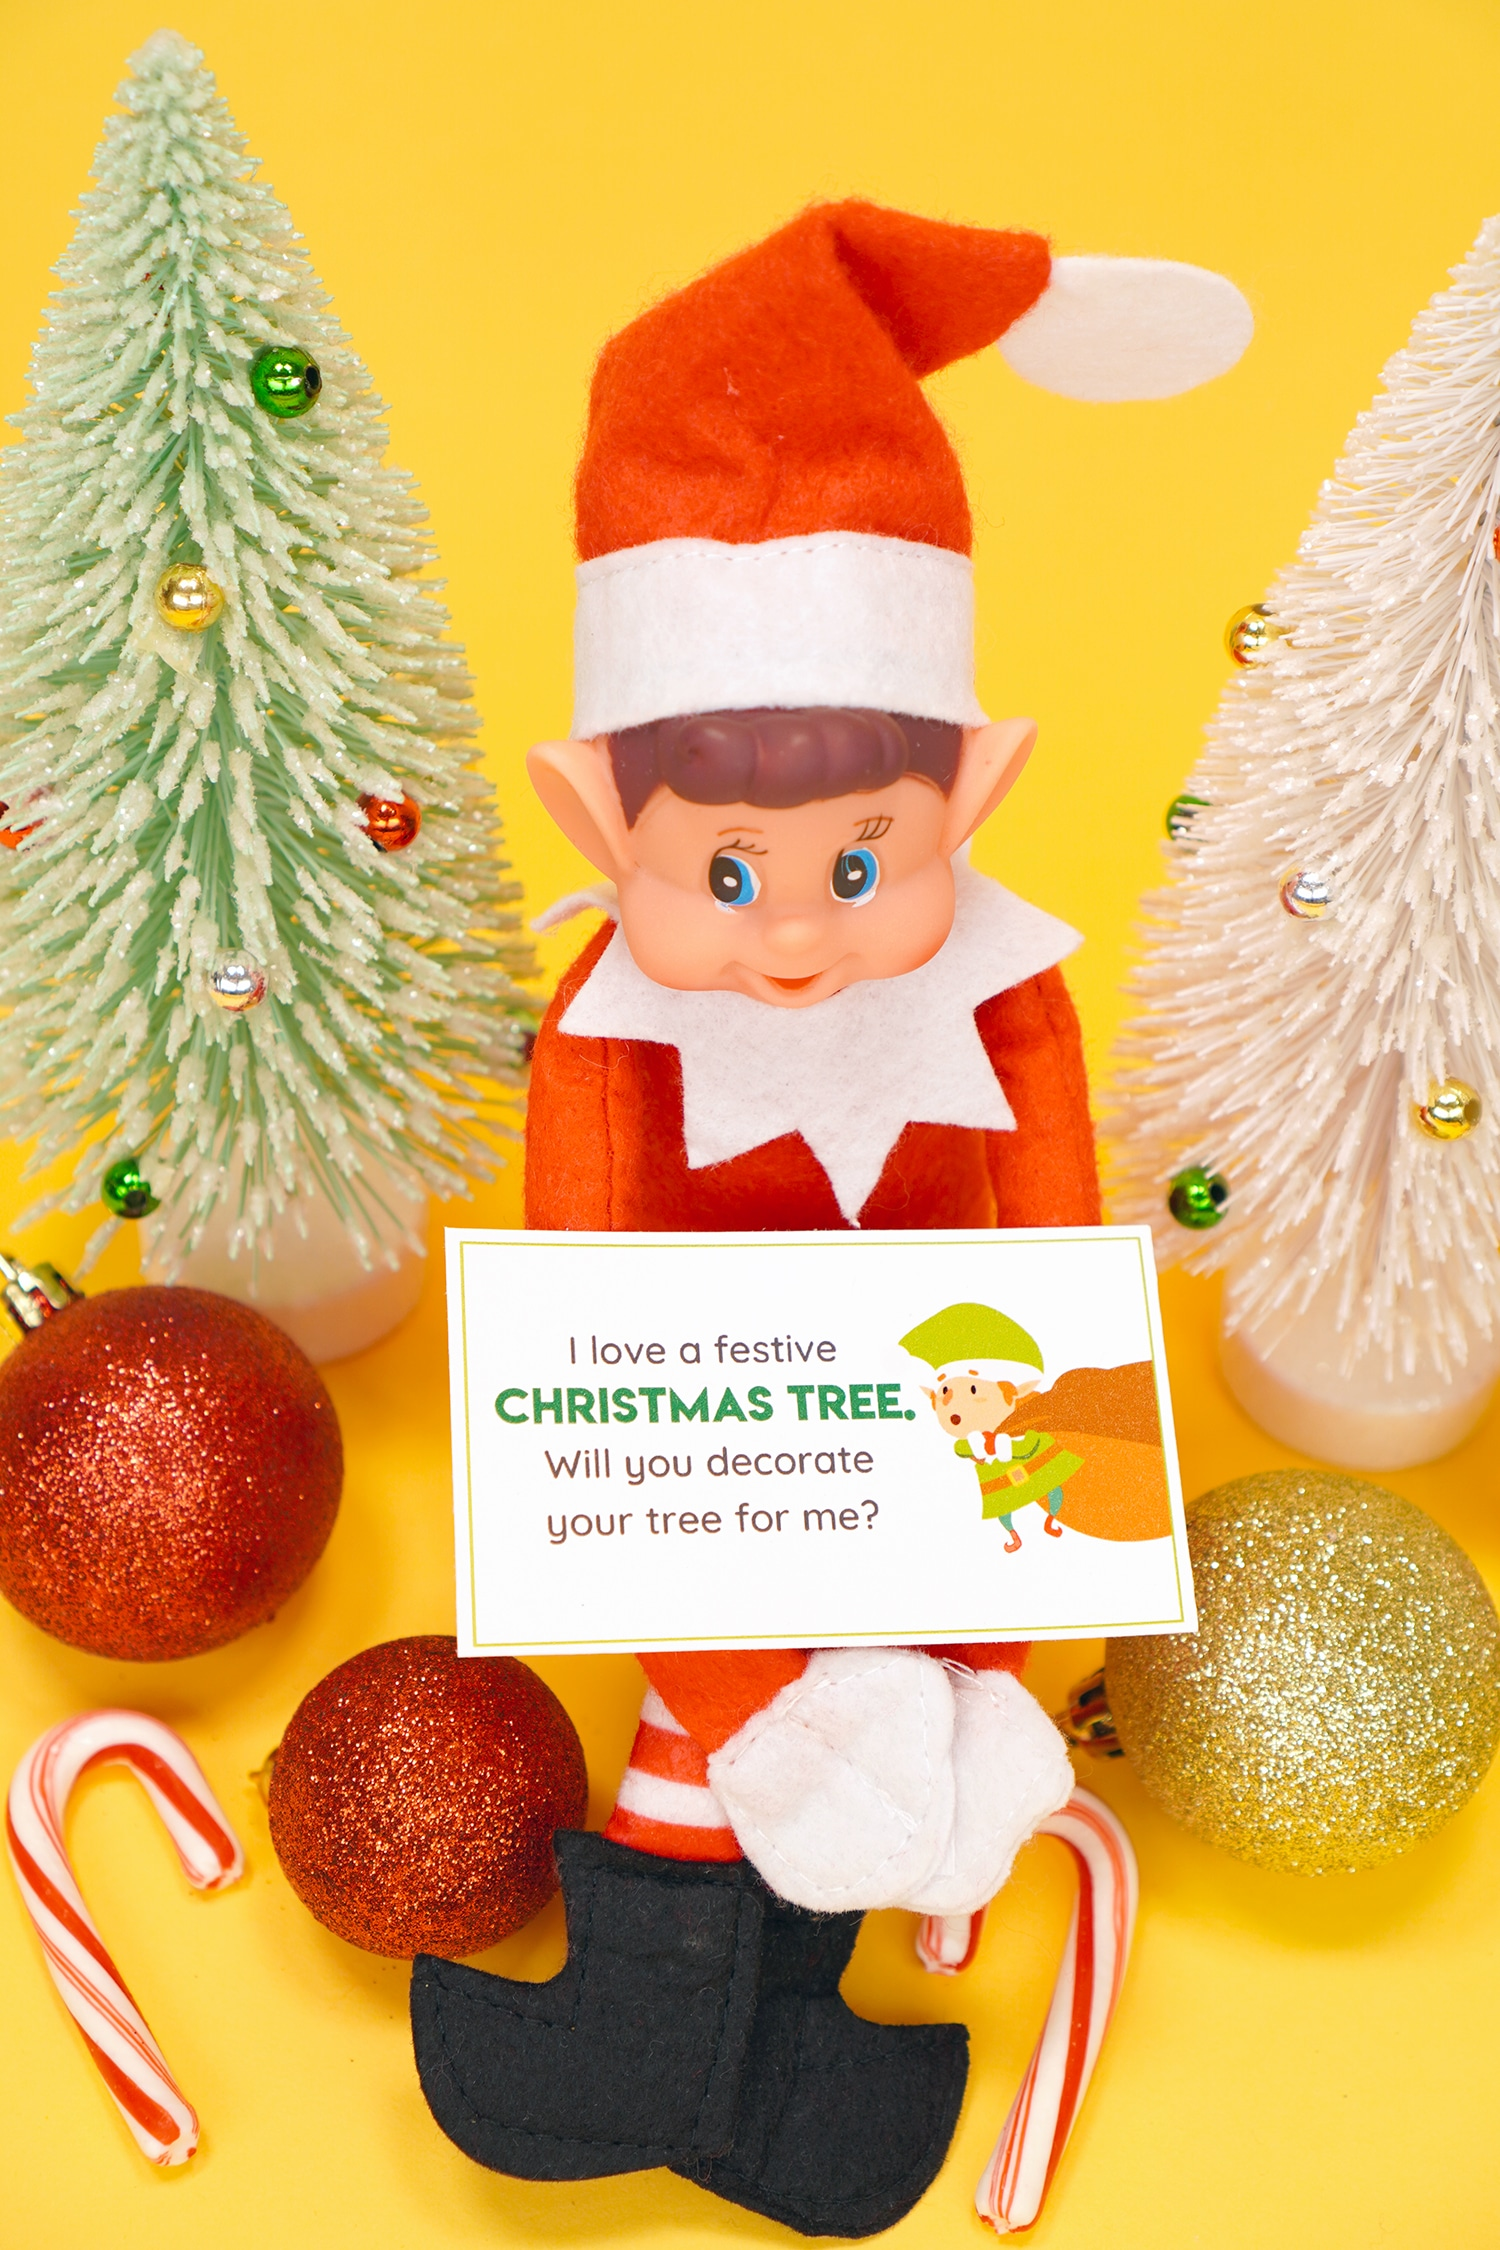 Elf doll holding a printable Elf on the Shelf note card with candy canes, ornaments, and glitter Christmas trees on yellow background